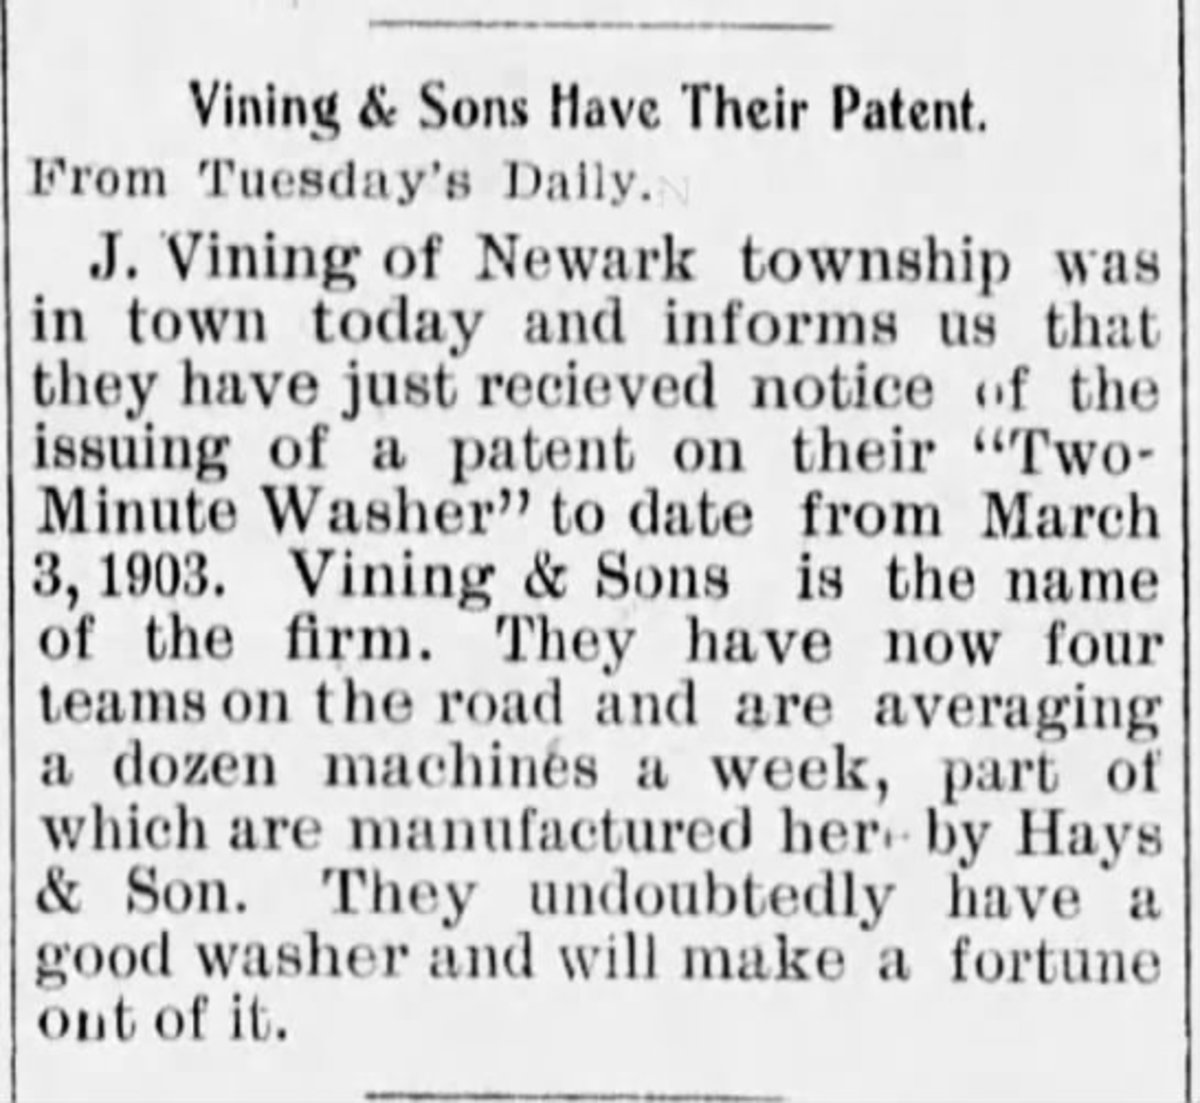 The Vinings develop a washing machine in 1903 and sell it widely. Wilson County Sun  (Neodesha, Kansas) 20 Feb 1903, Fri  • Page 4